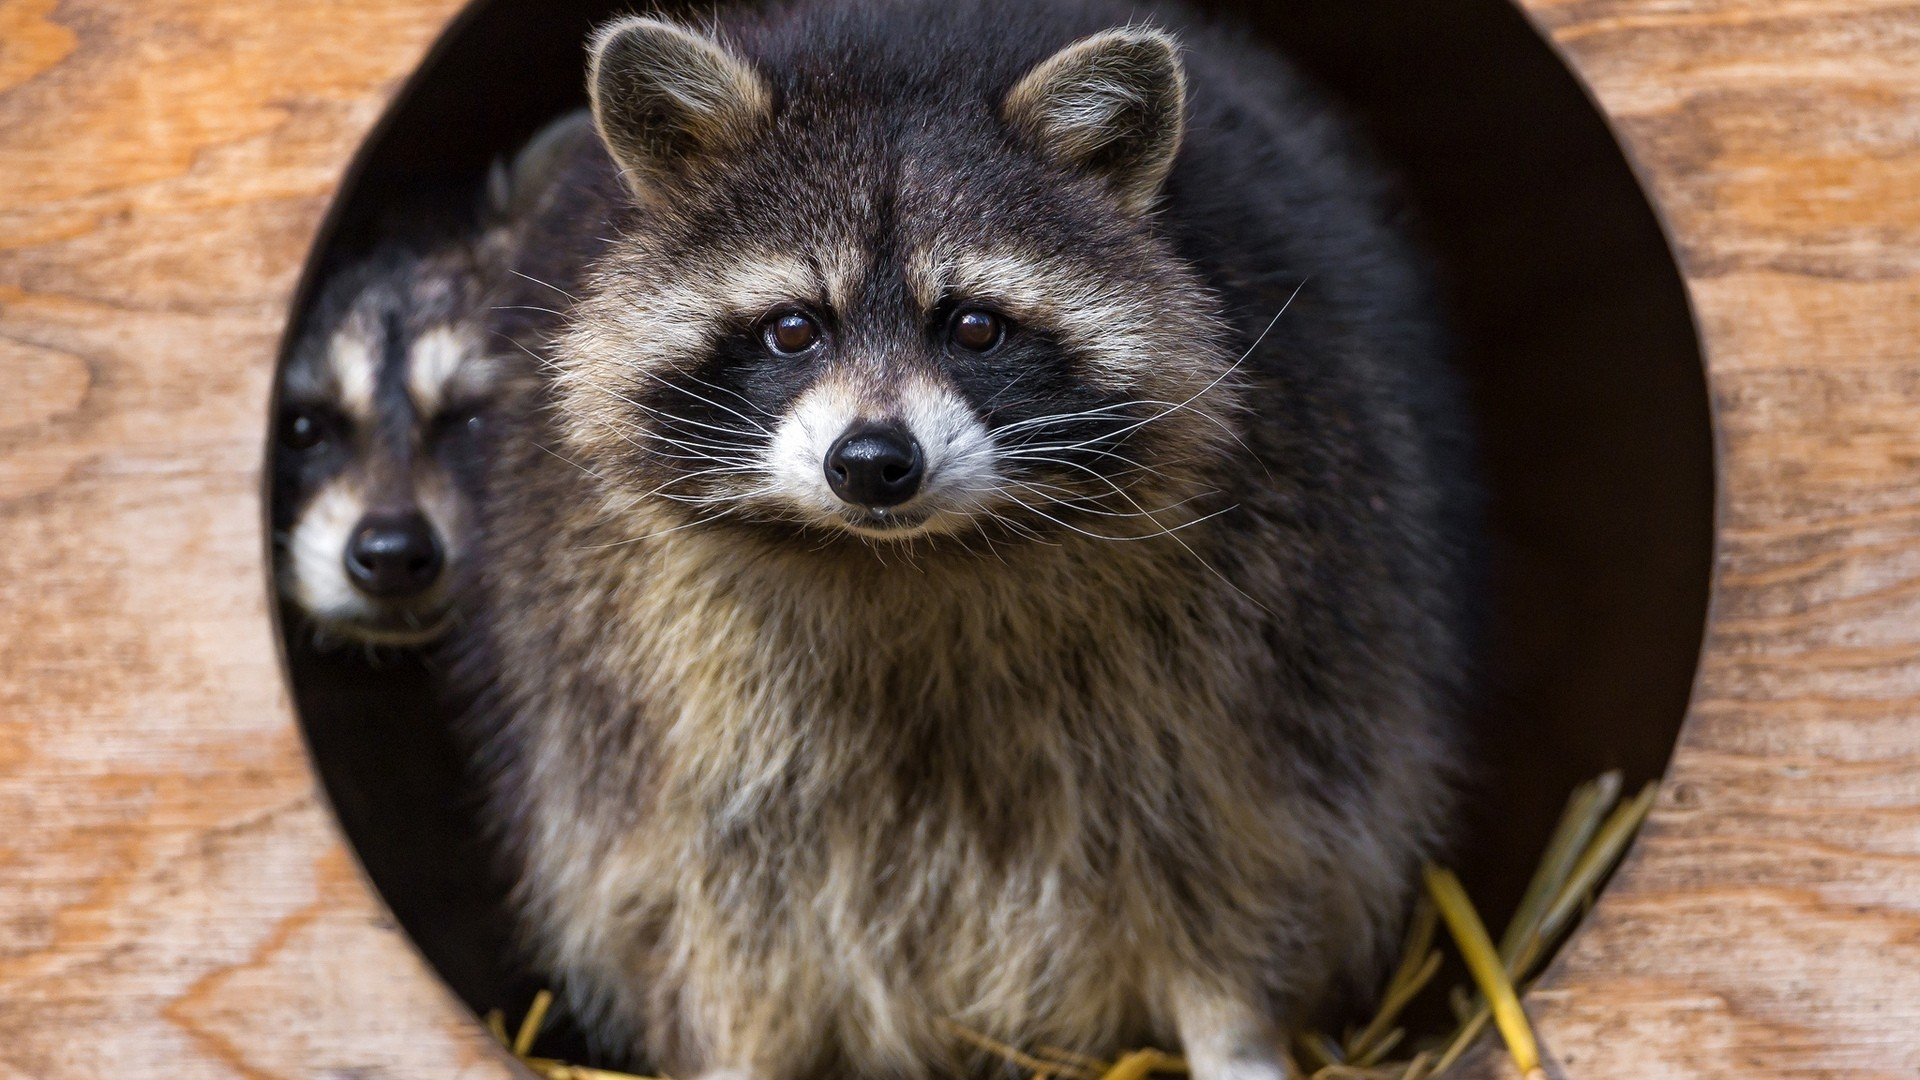 Funny Raccoon good wallpaper hd